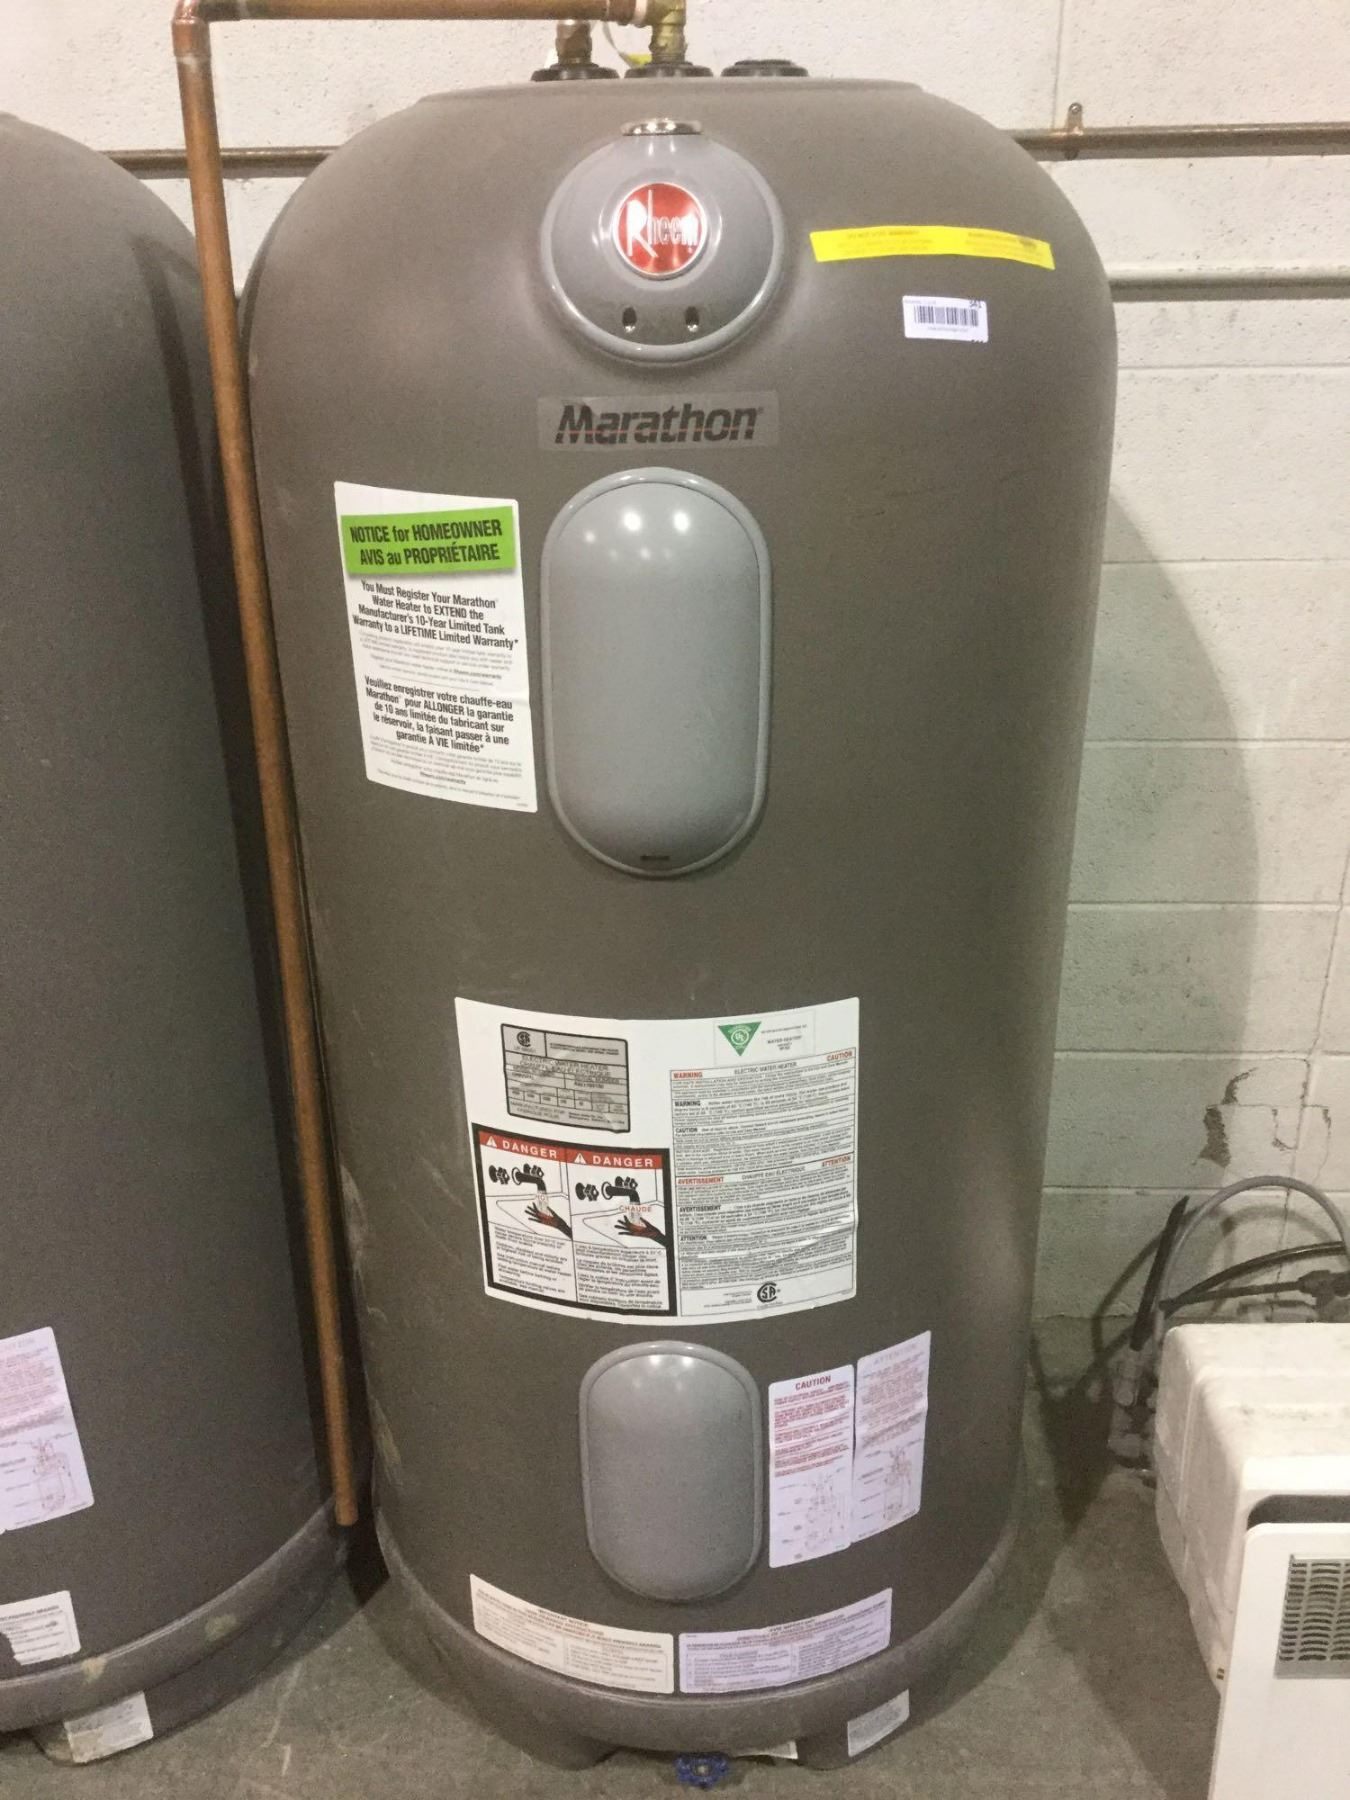 Chauffe Eau Rheem Marathon Rheem Electric Water Heater 60 Imp Model Cmr75245